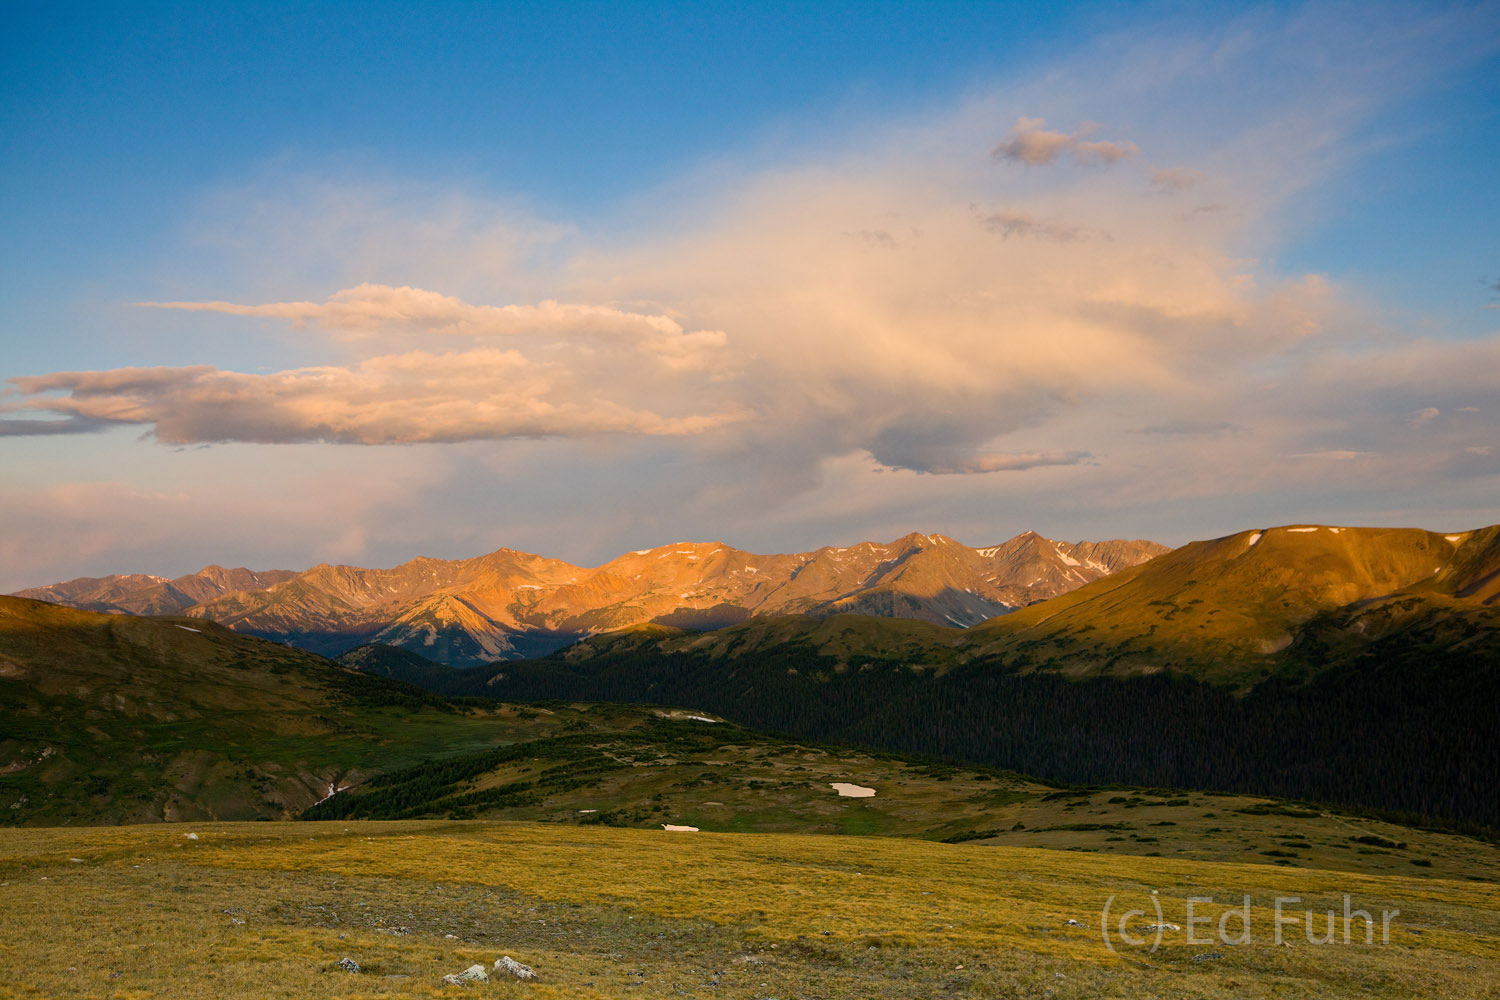 trail ridge road, sunrise, rmnp, rocky mountains, photo